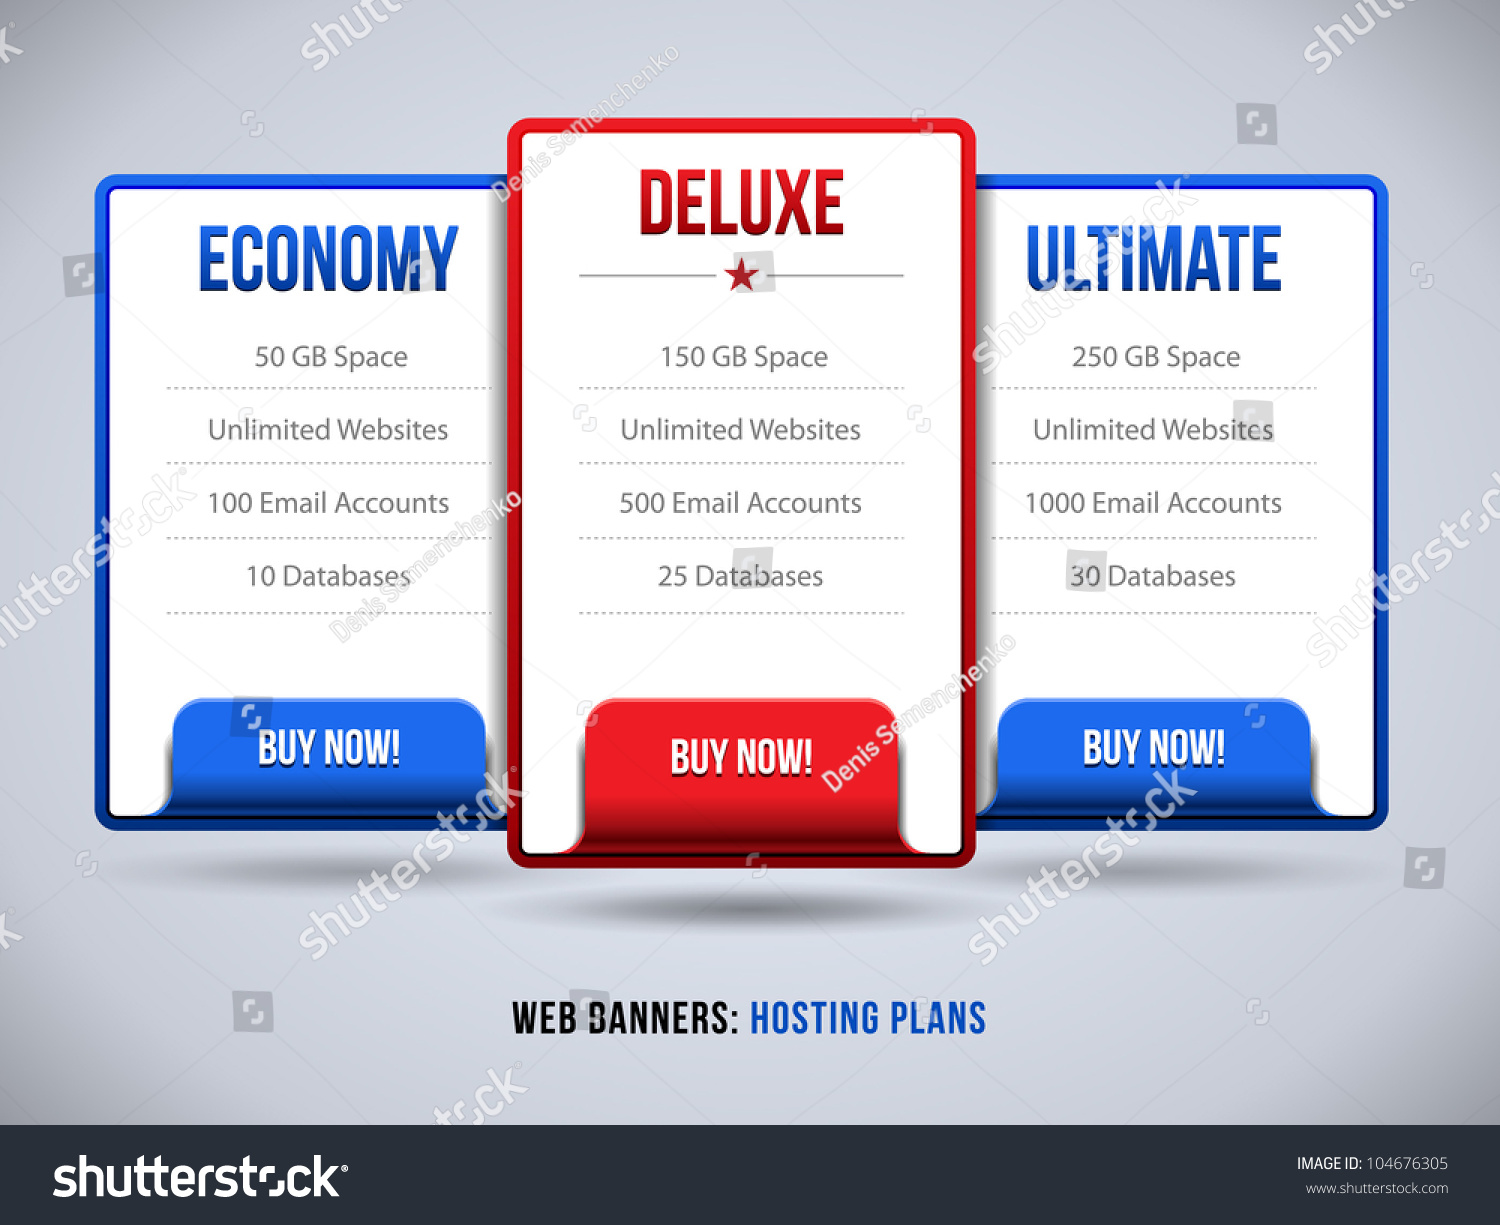 Web Banners Boxes Hosting Plans Pricing Stock Vector 104676305 ...